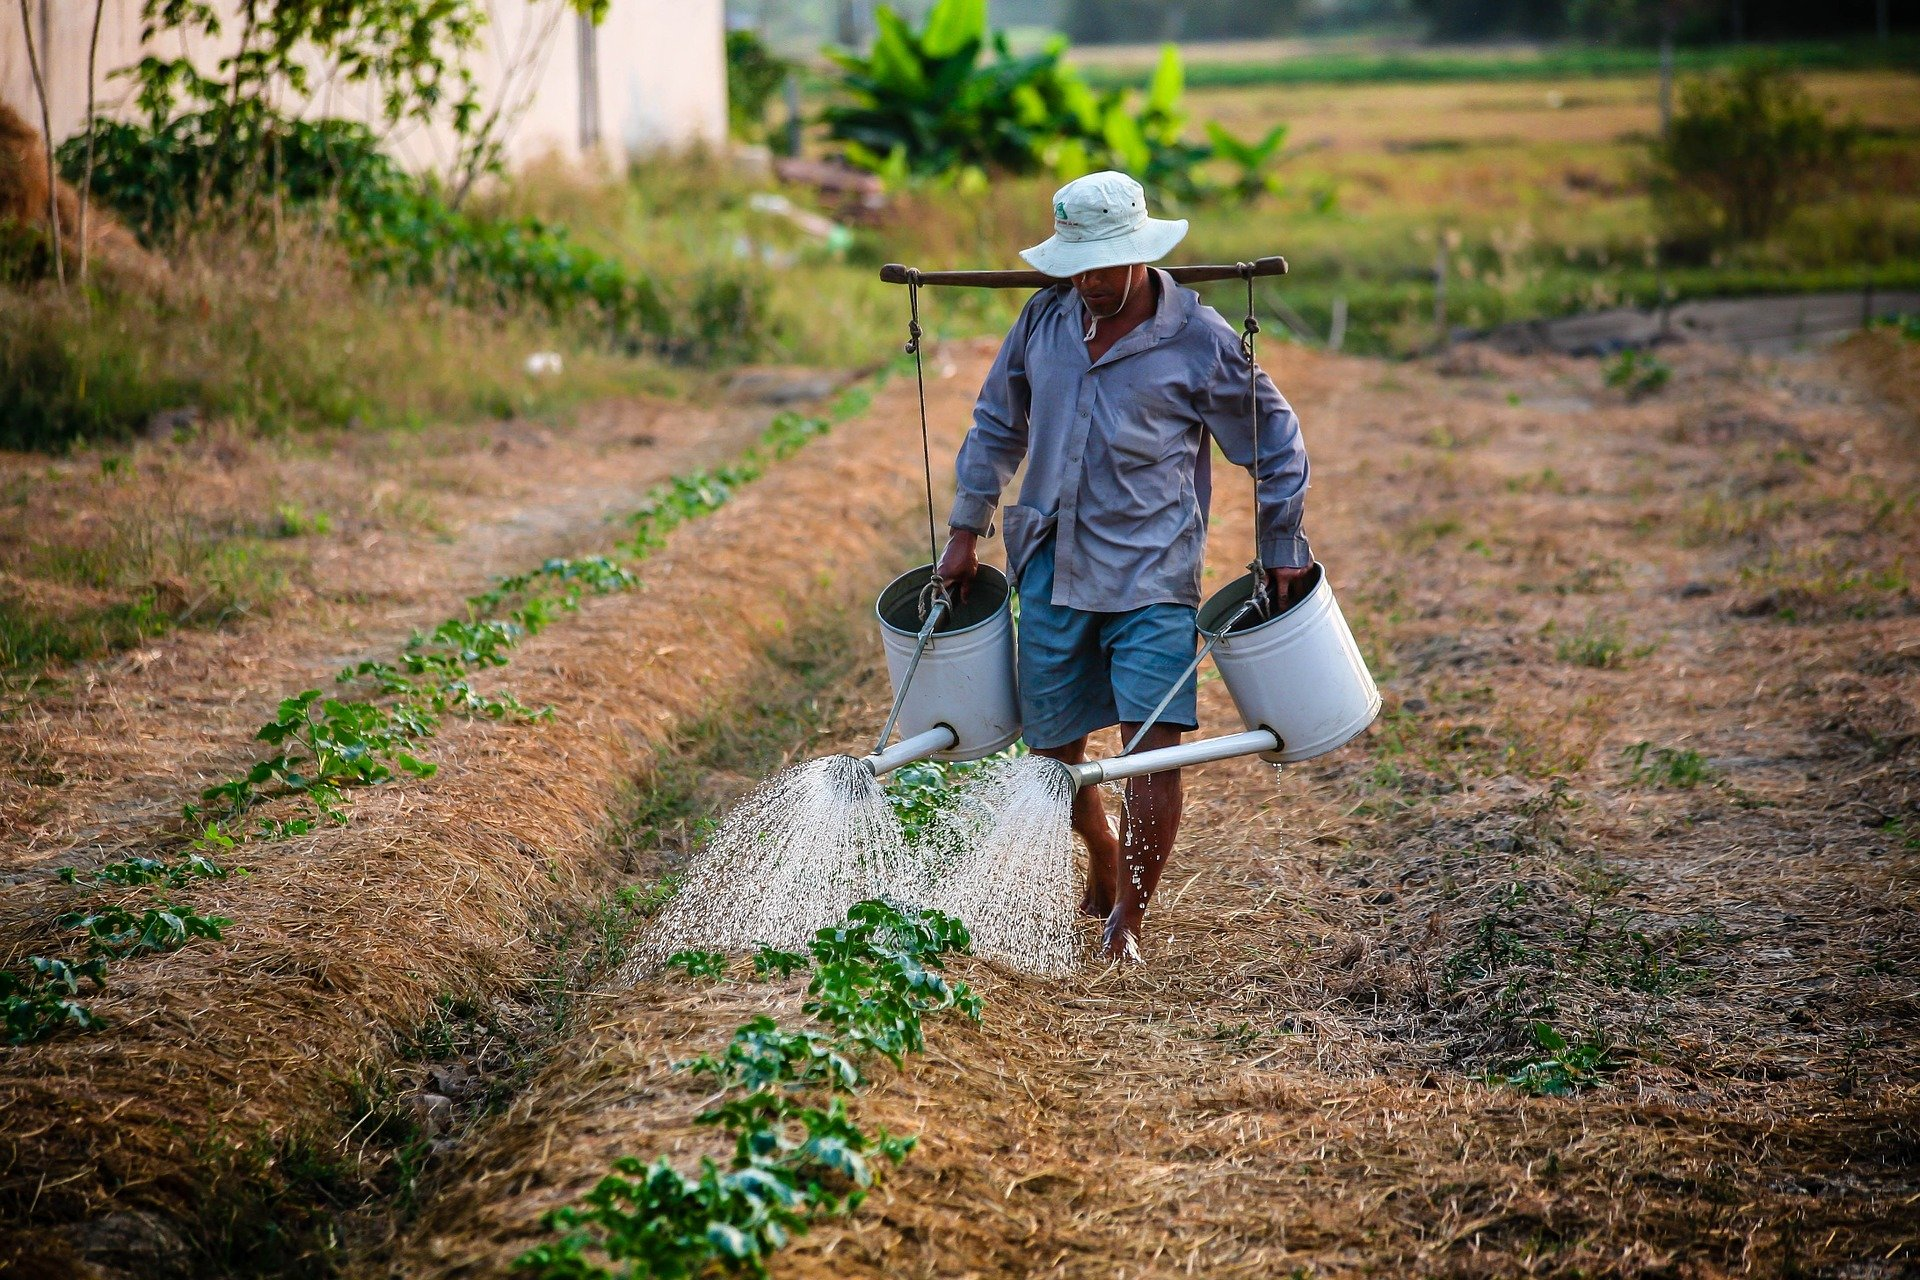 A global mask shortage may leave farmers and farm workers exposed to toxic pesticides